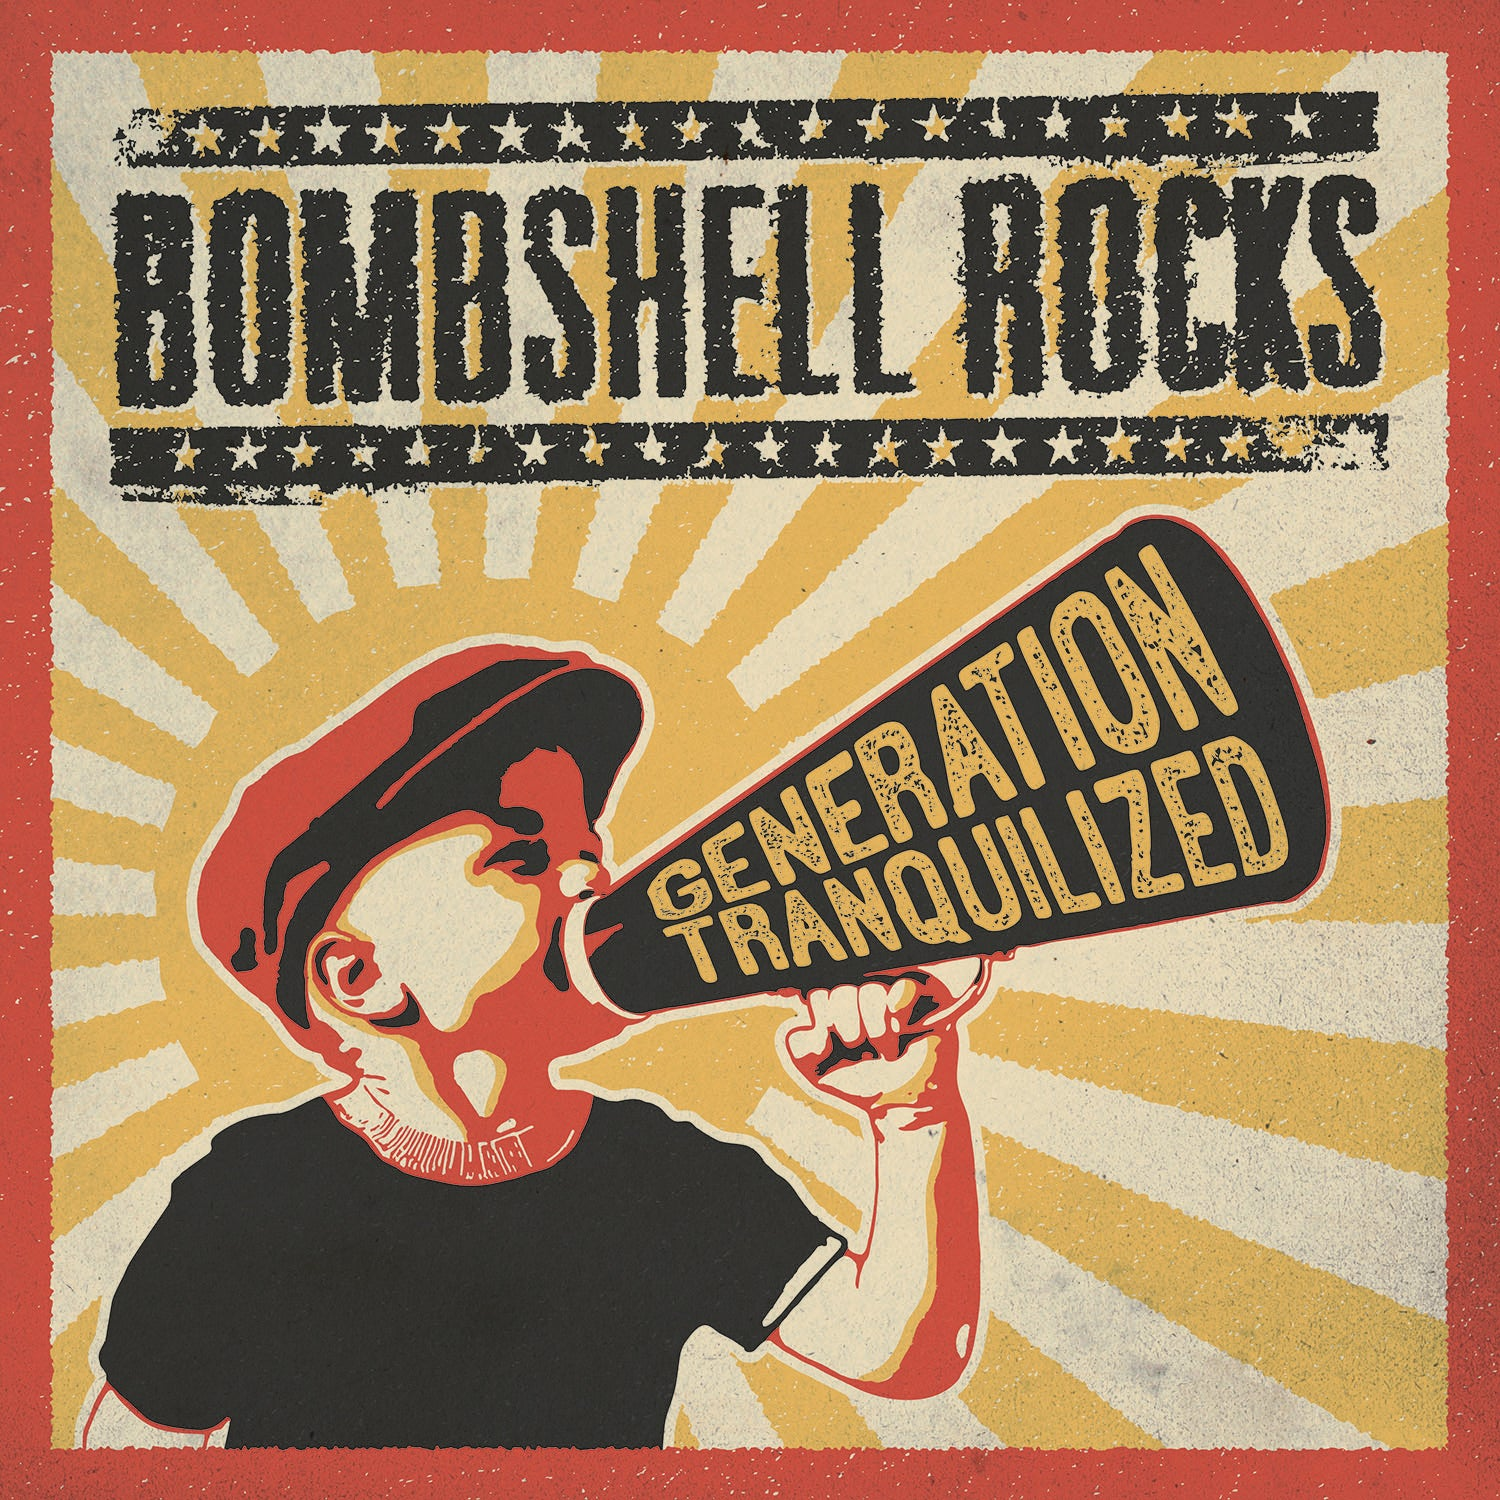 Bombshell Rocks - Generation Tranquilized LP / CD